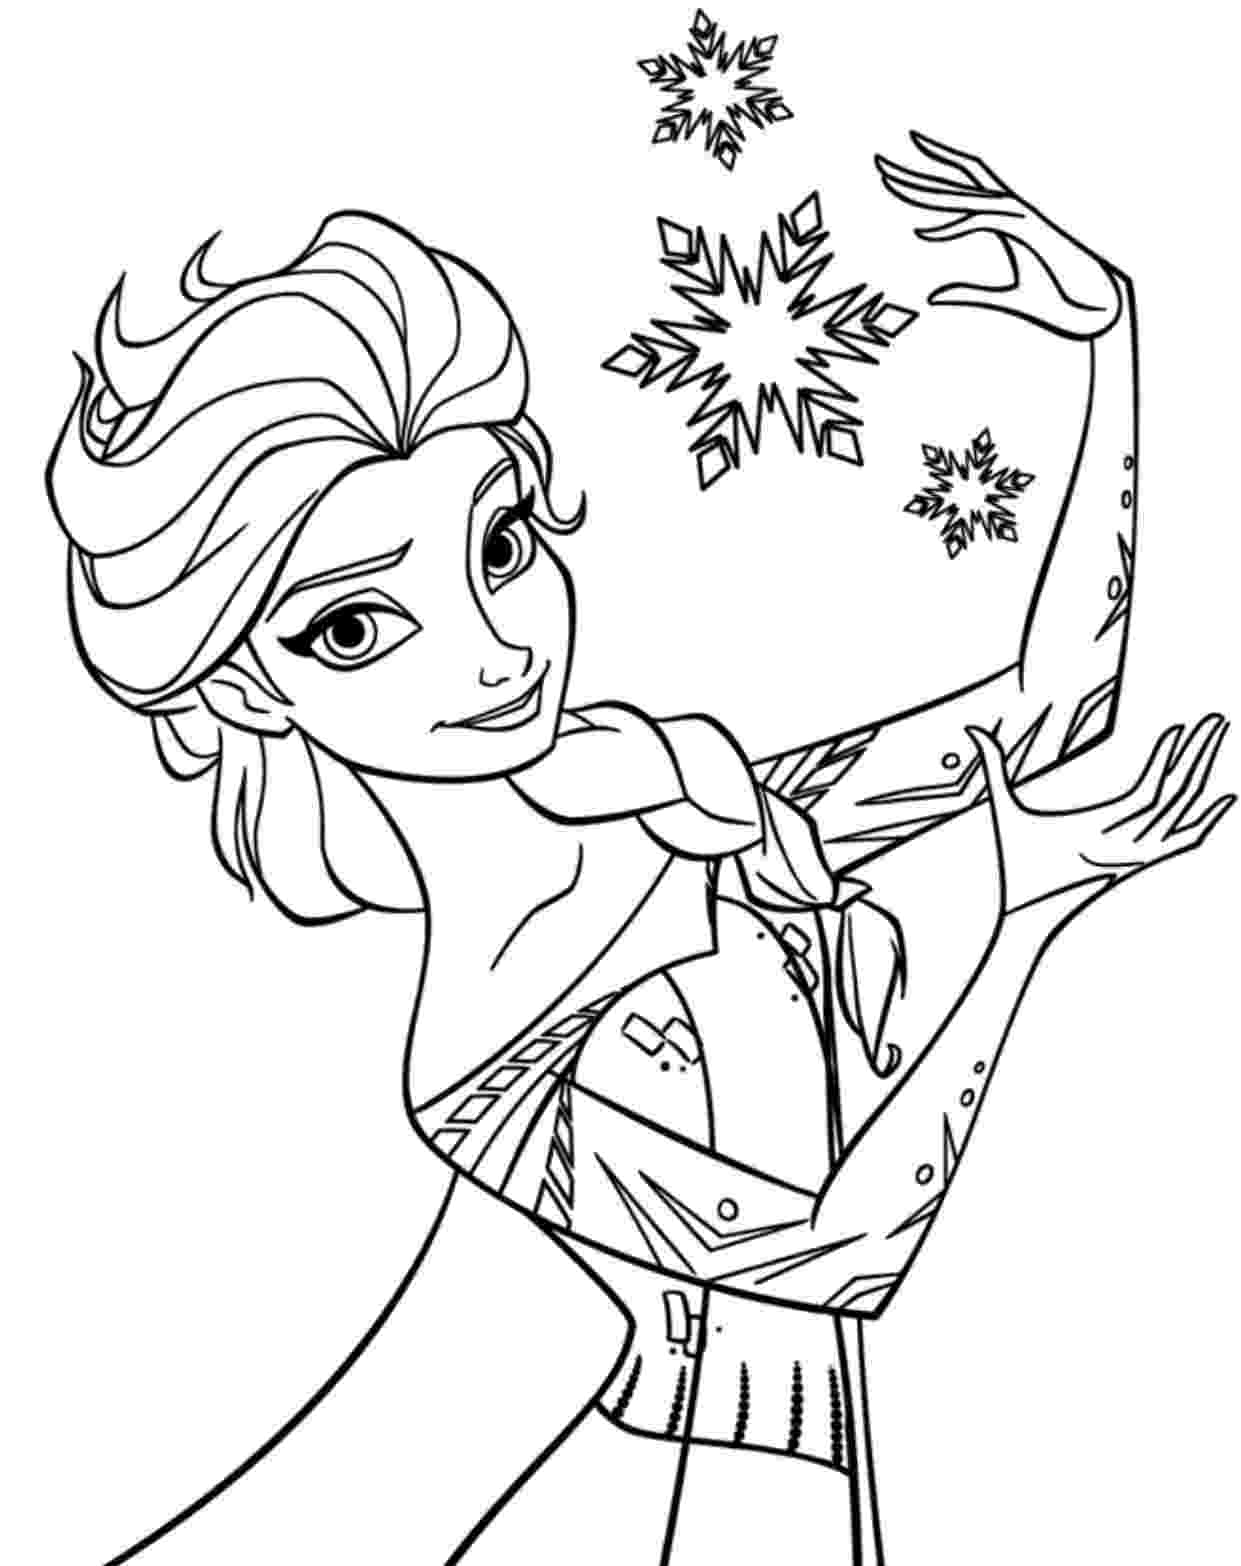 free coloring pages printable fortnight coloring pages to download and print for free printable free coloring pages